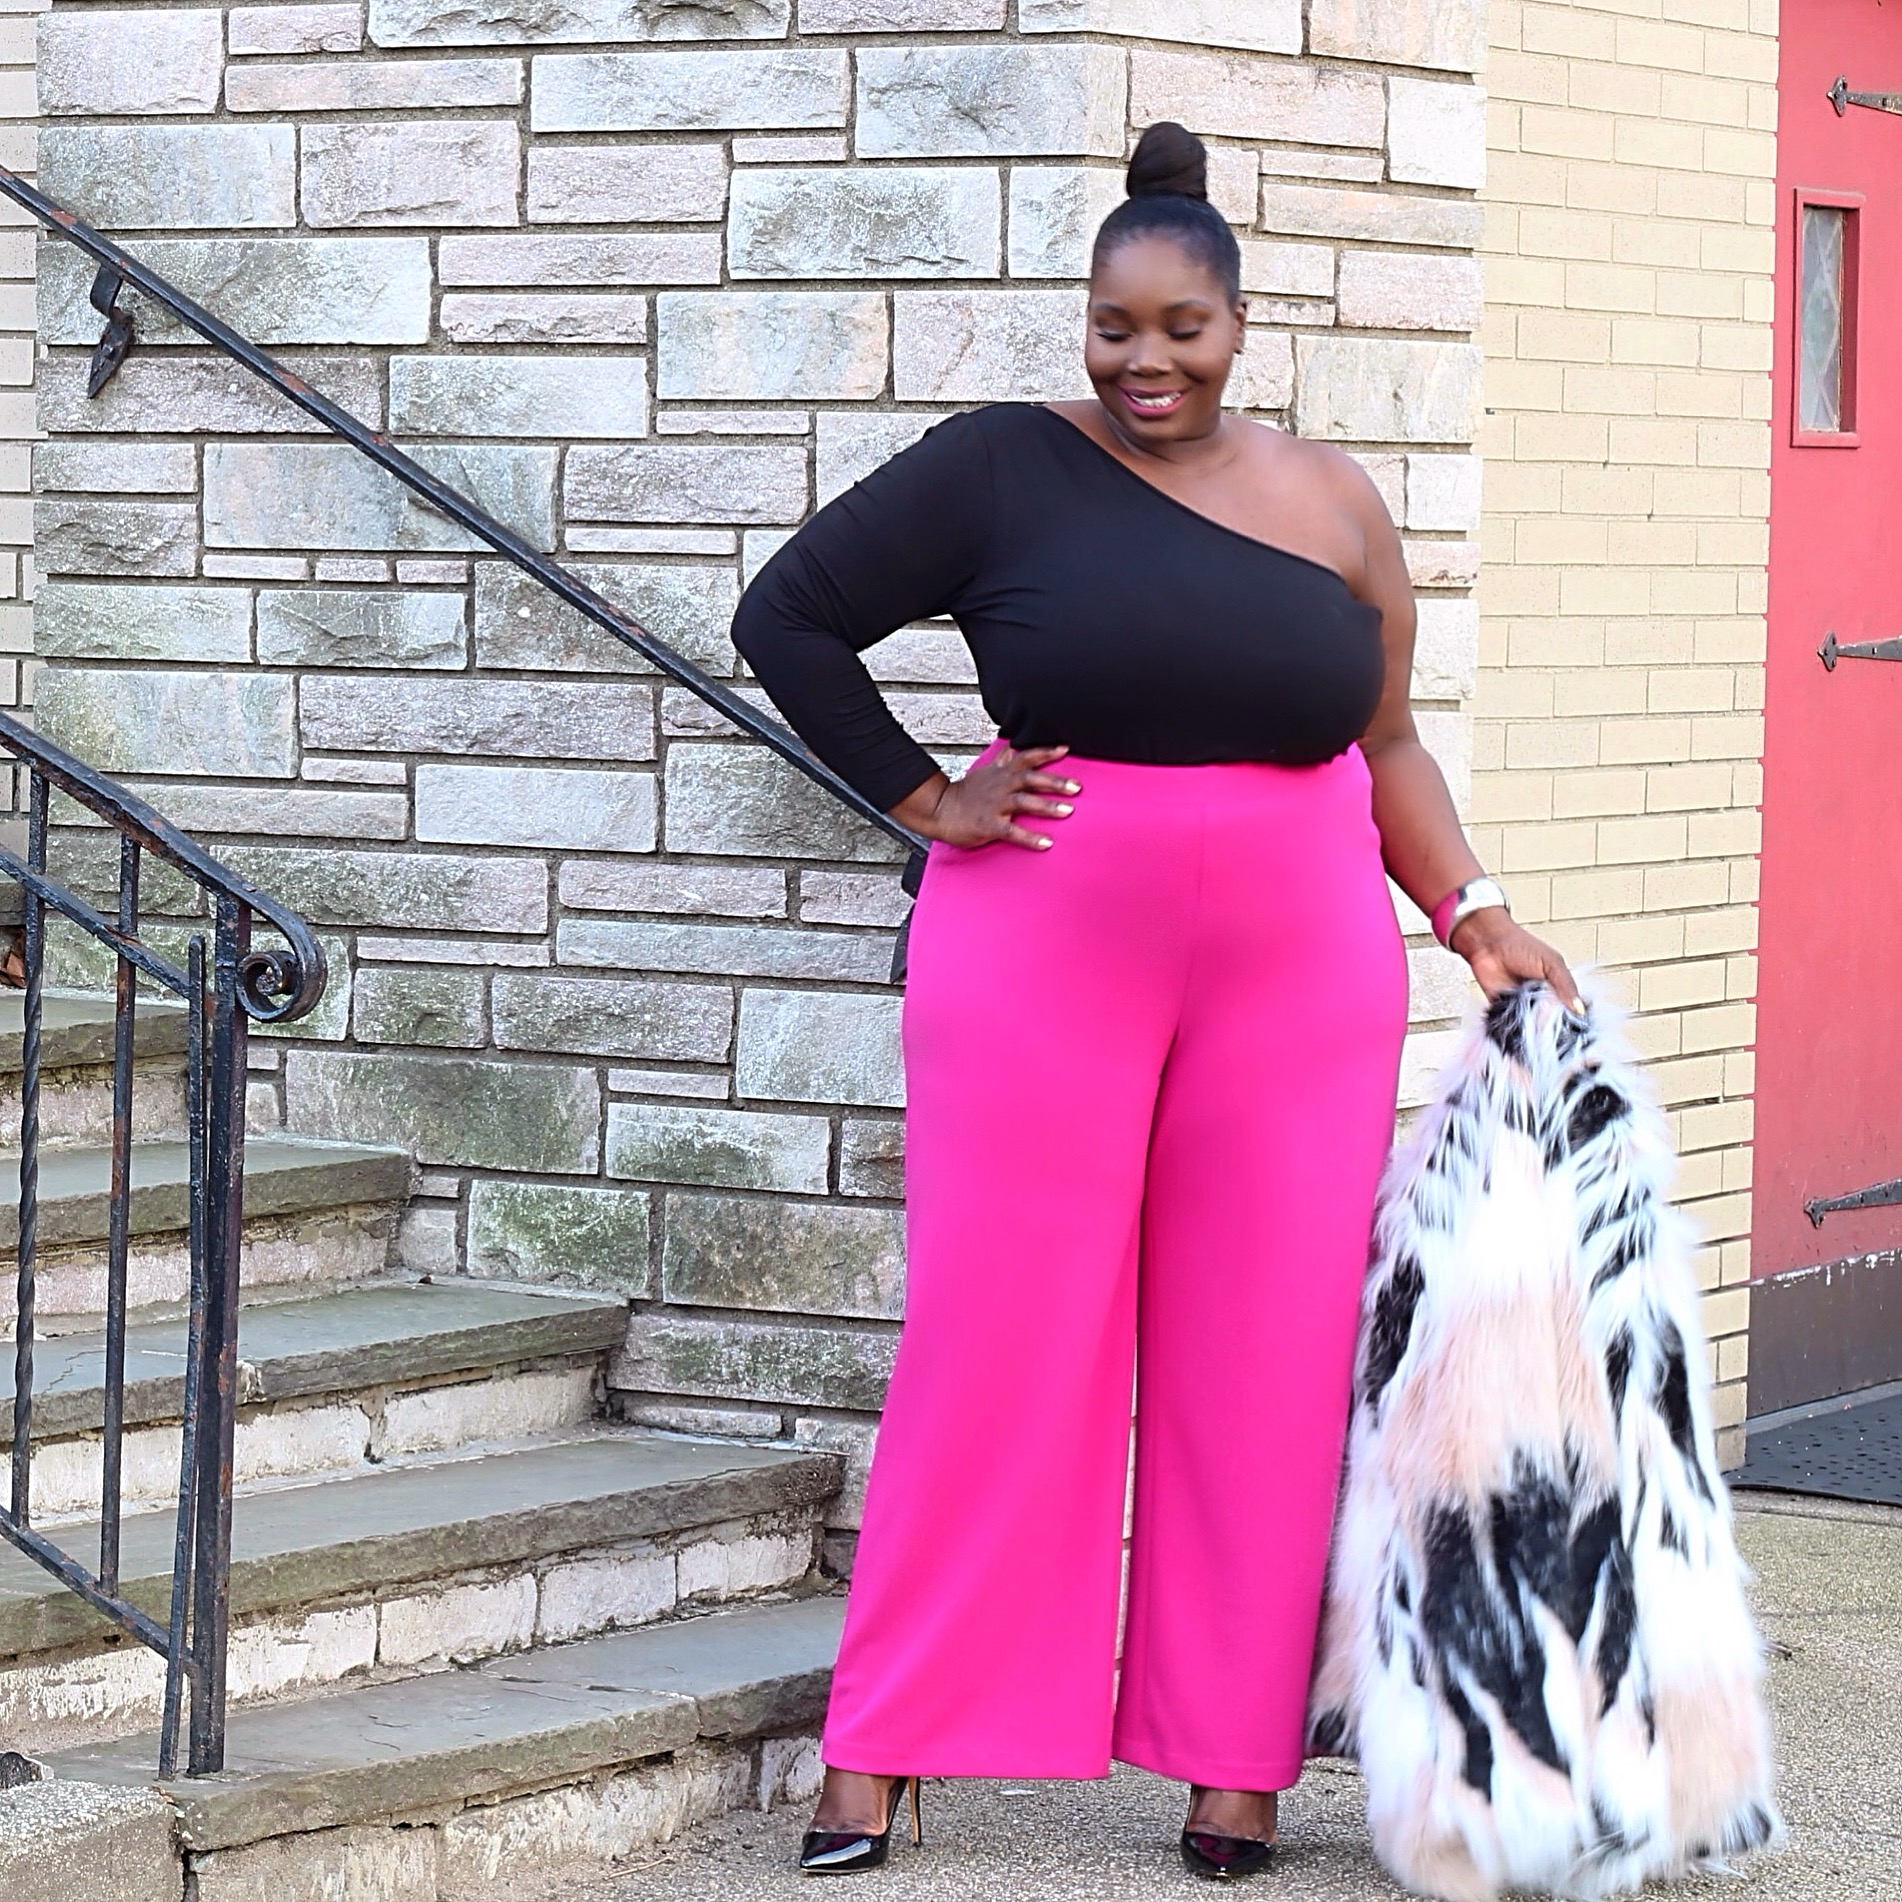 Stitch Fix affordable personal styling service for plus size women